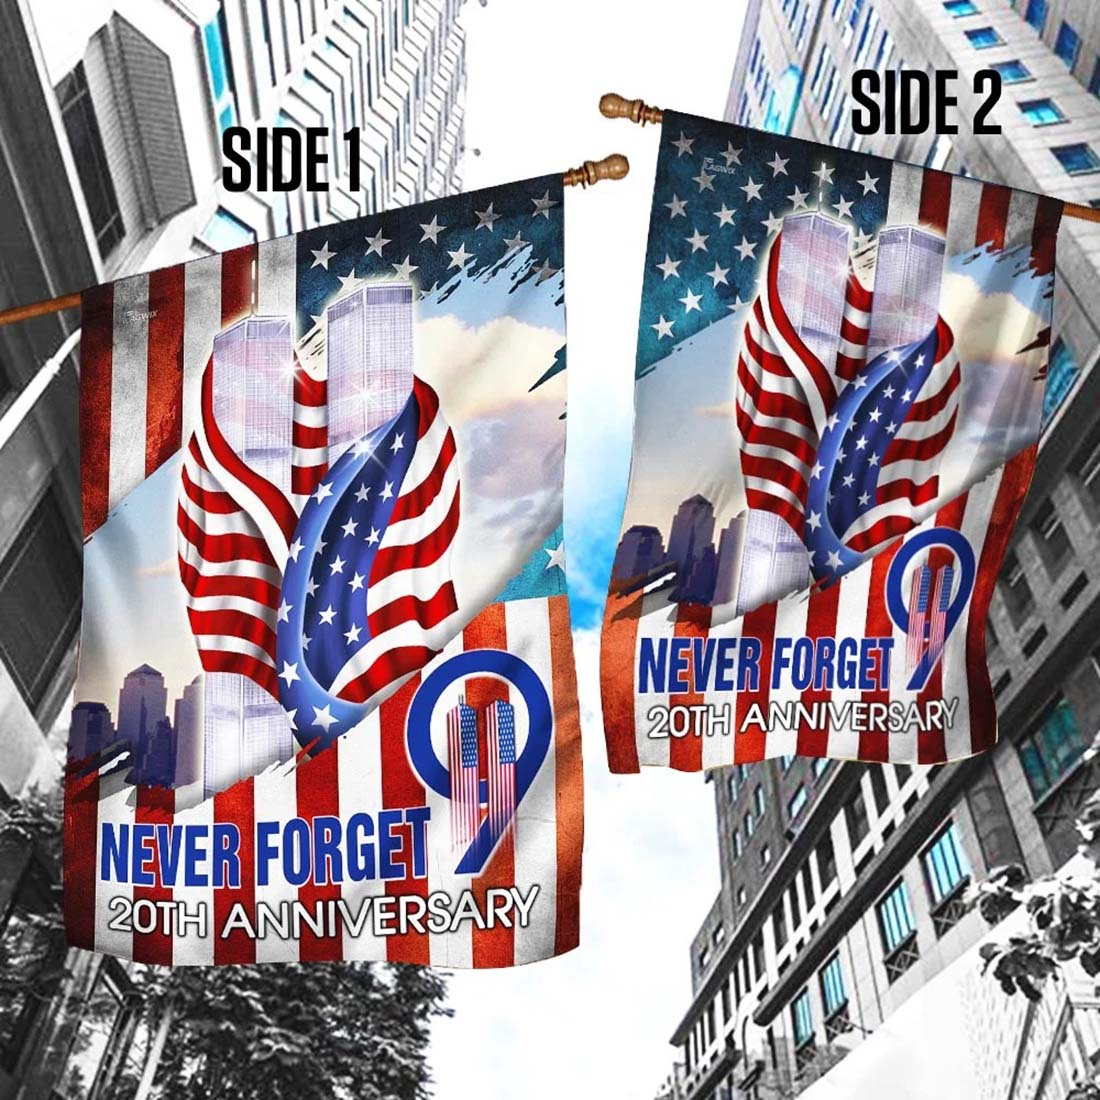 Never forget 9 11 20th anniversary flag